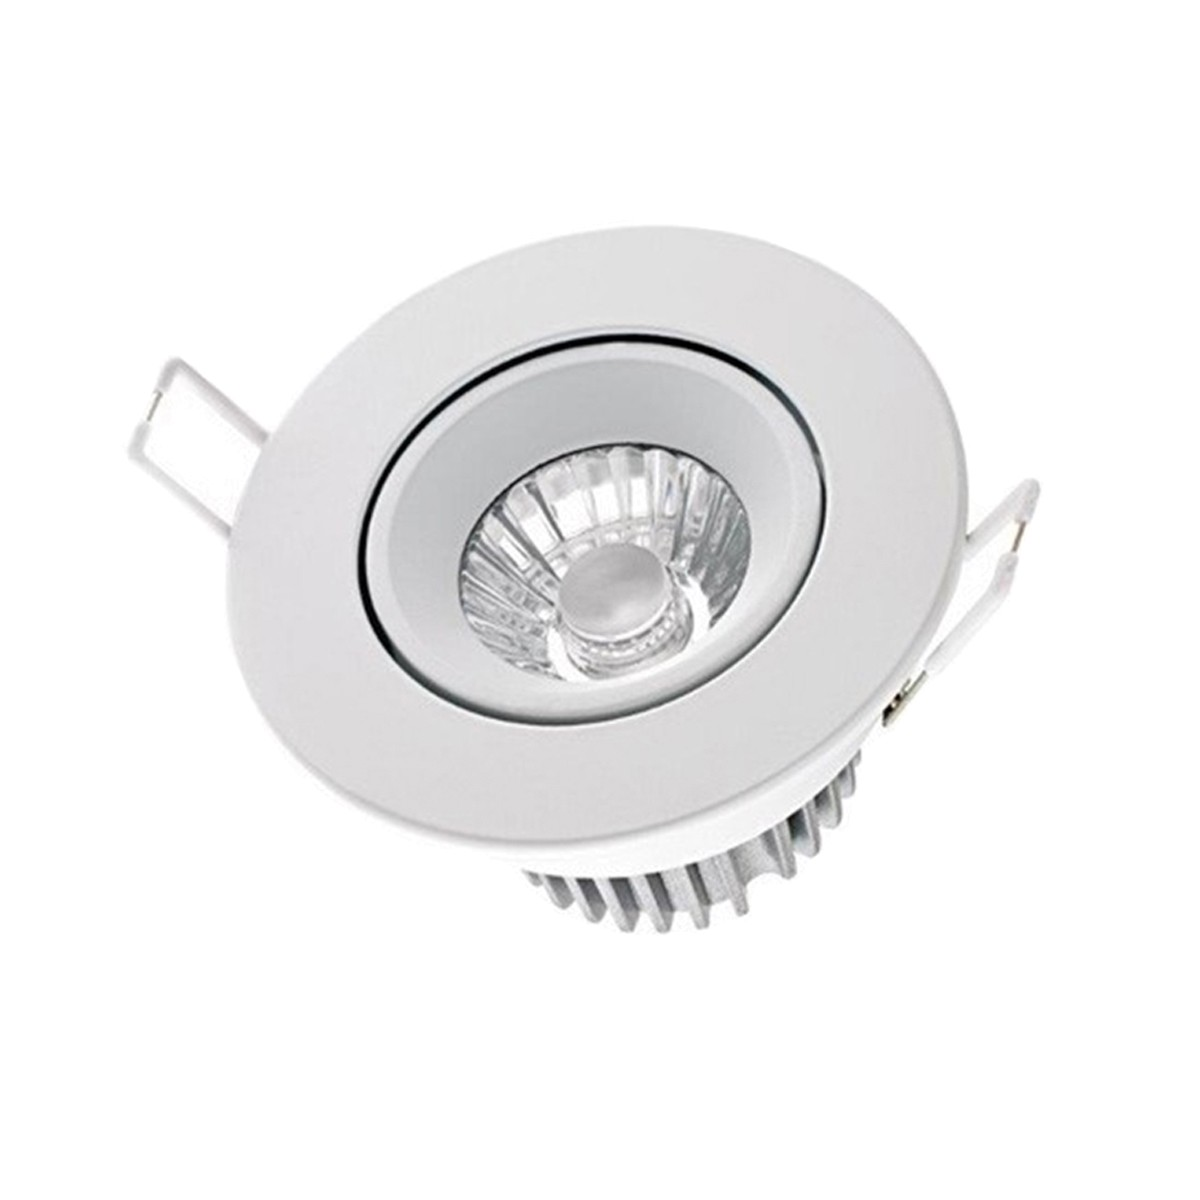 Sigor Haled LED Downlight Einbaustrahler, Dim-to-Warm, weiß